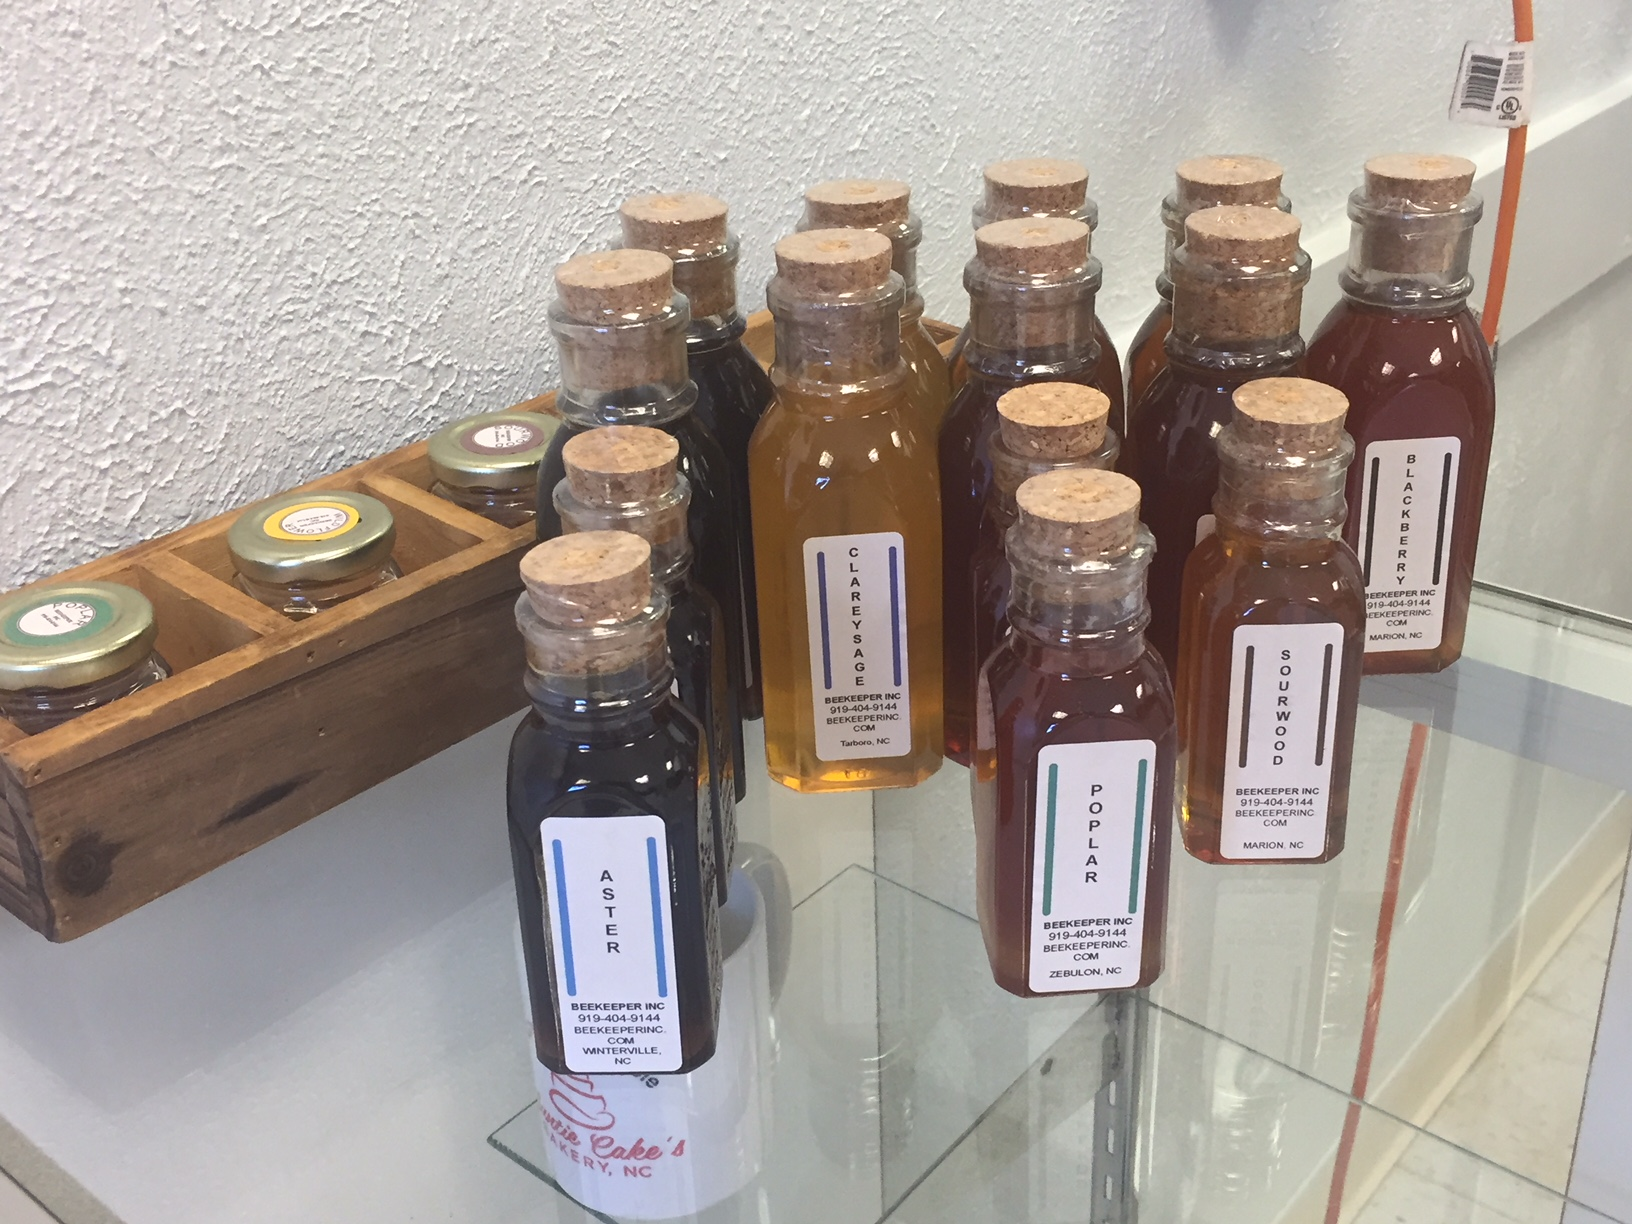 Honey from Beekeeper Inc. for sale in Auntie Cake's Bakery, NC. Photo: Kay Whatley